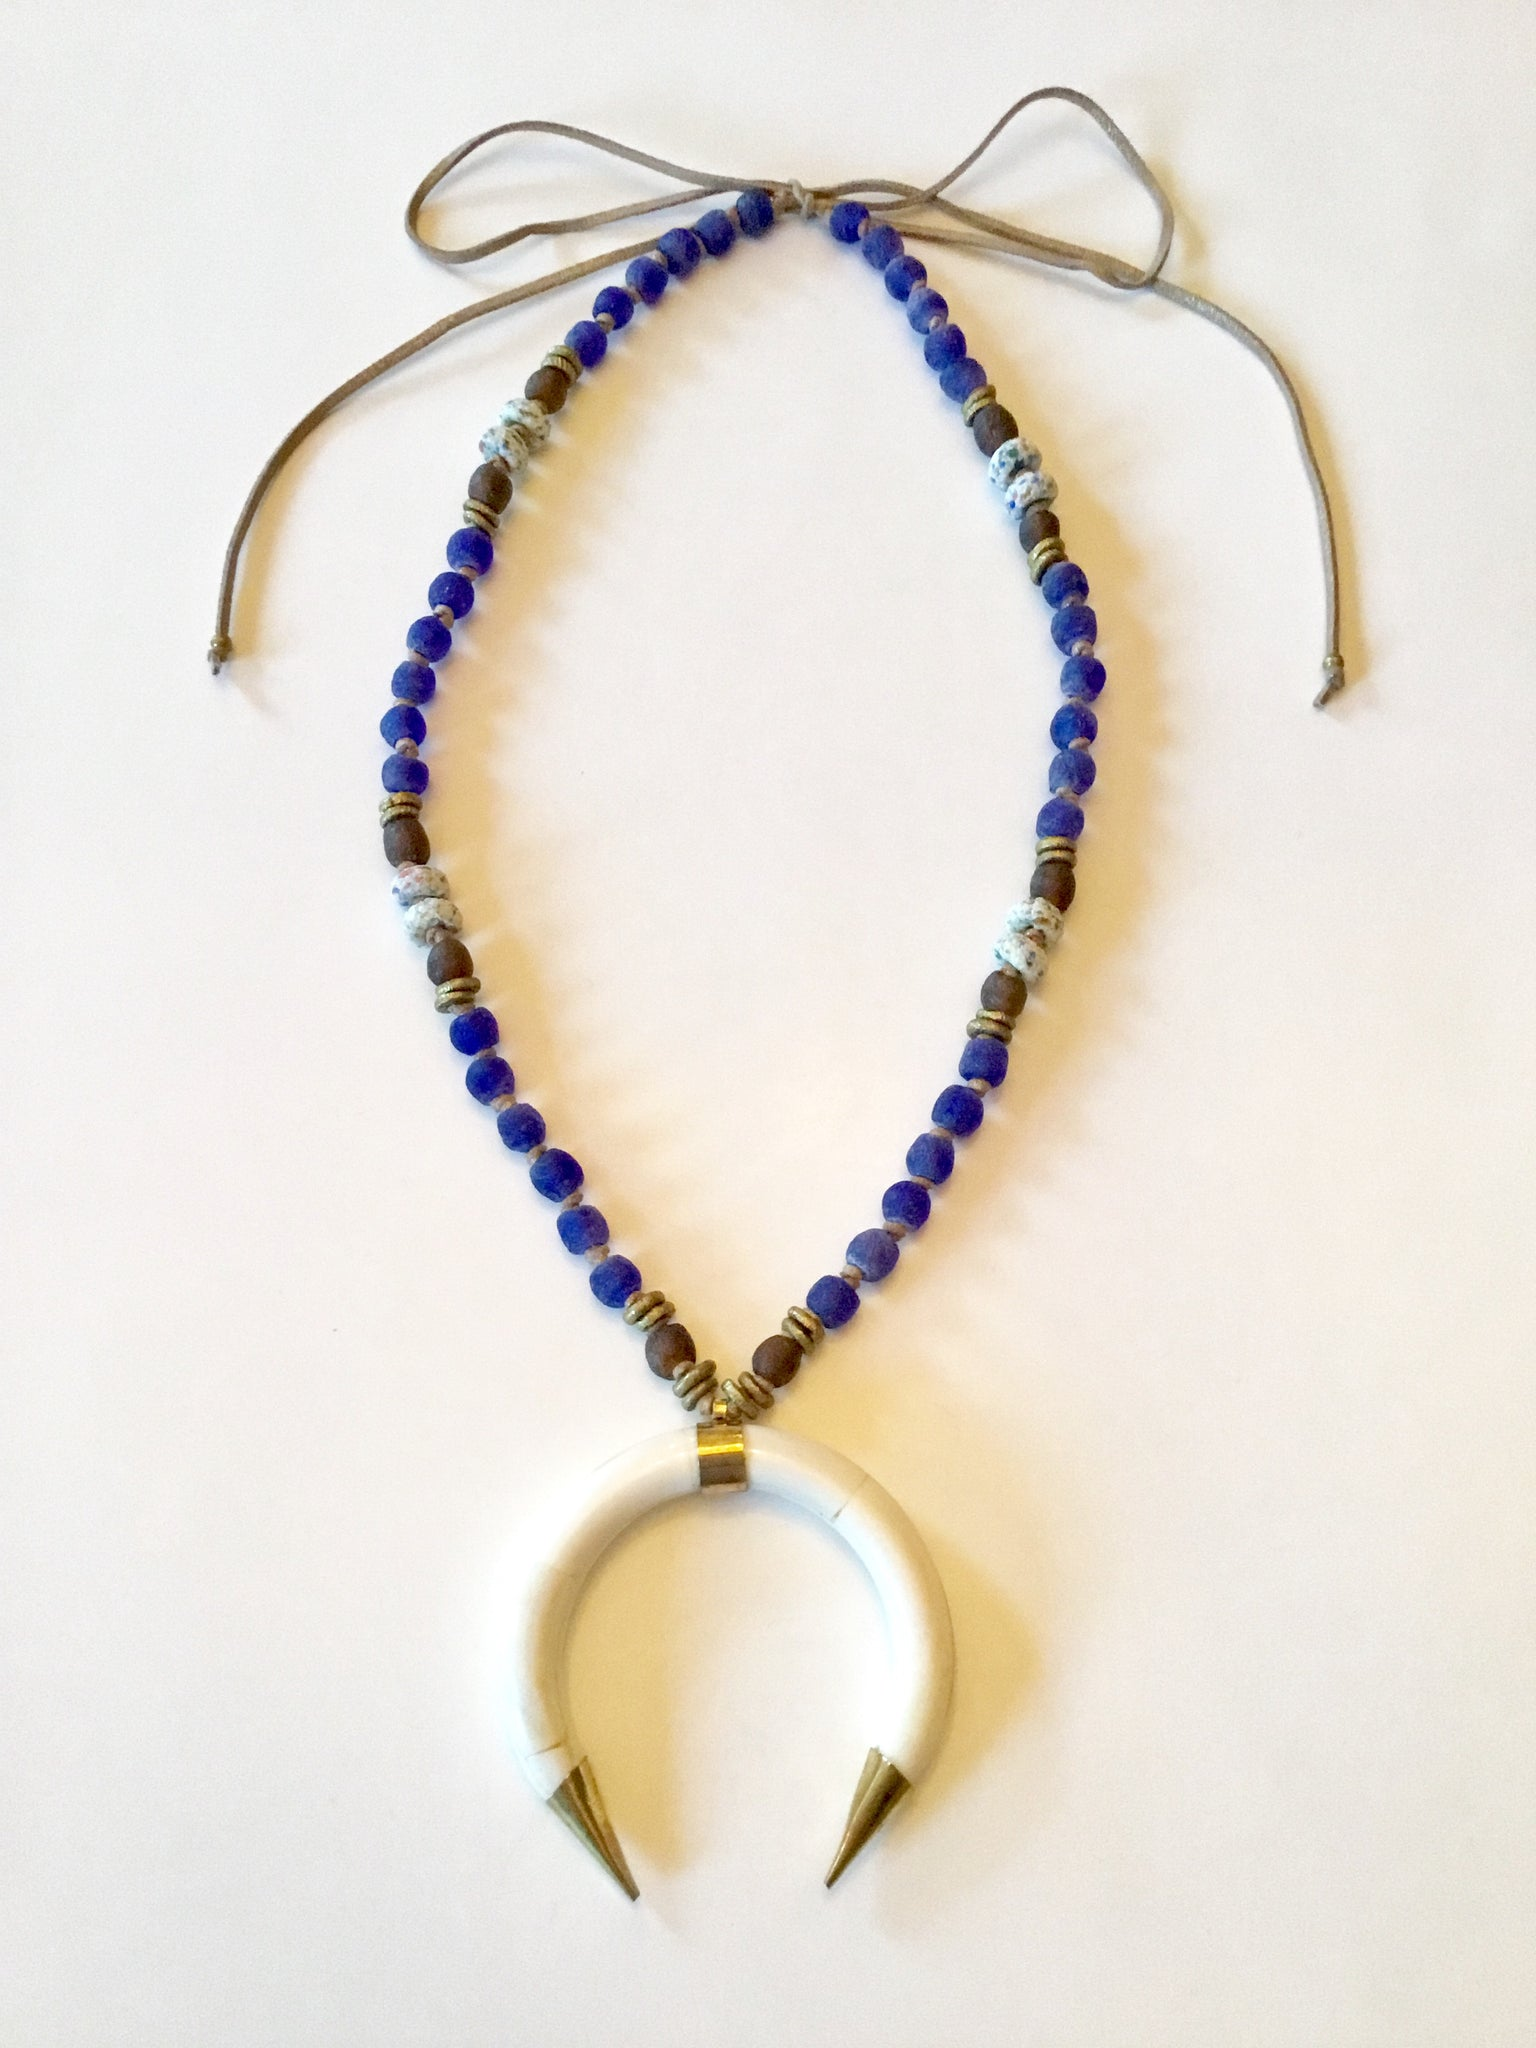 Ethopian Necklace N-0327, designed by Leyu Ambare Handmade Jewelry.